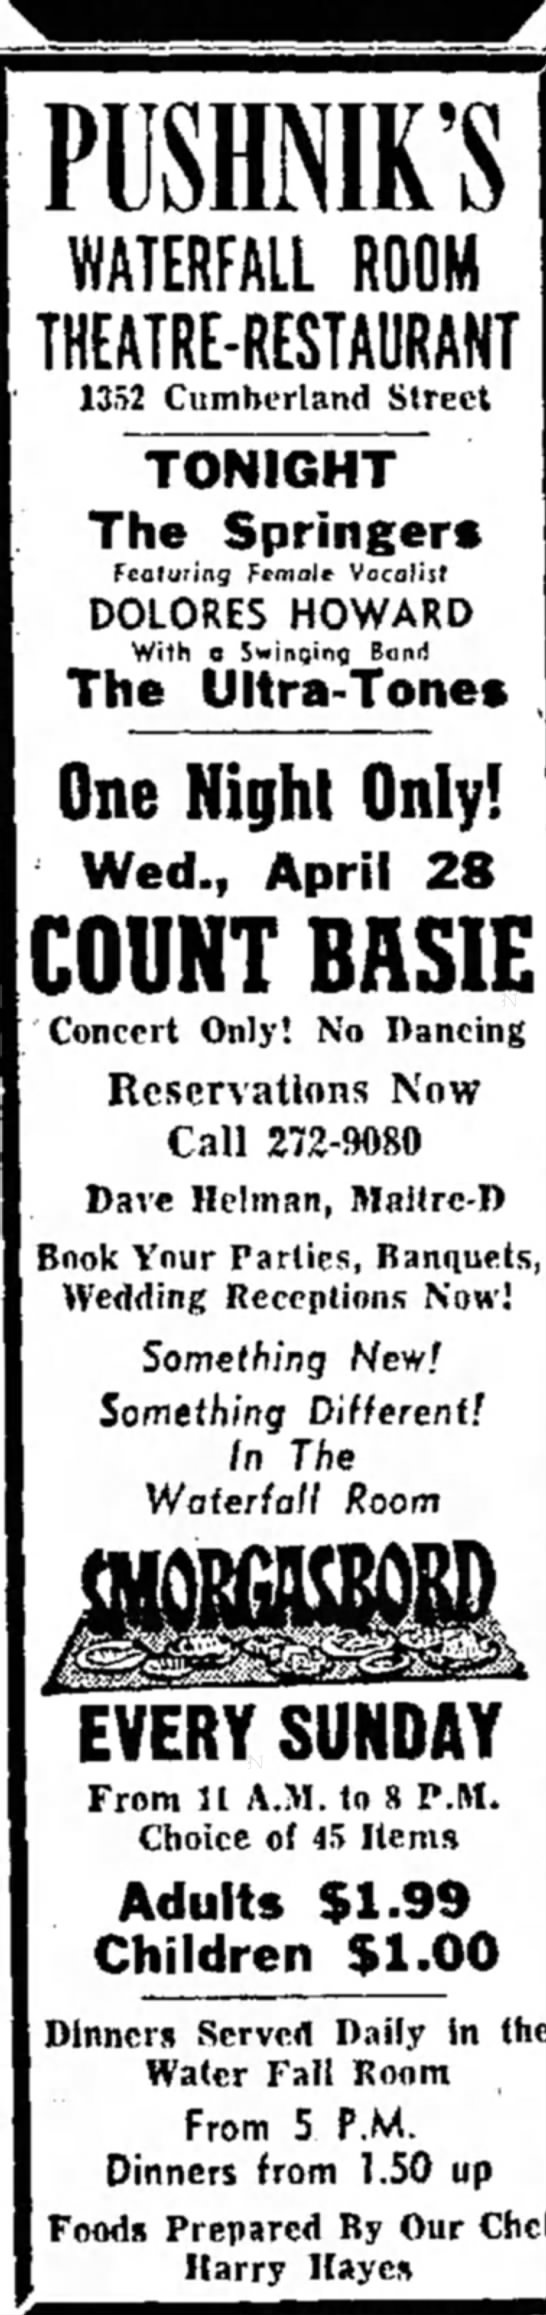 Count Basie at Pushnik's - PUSHNIK'S WATERFALL ROOM THEATRE-RESTAURANT...